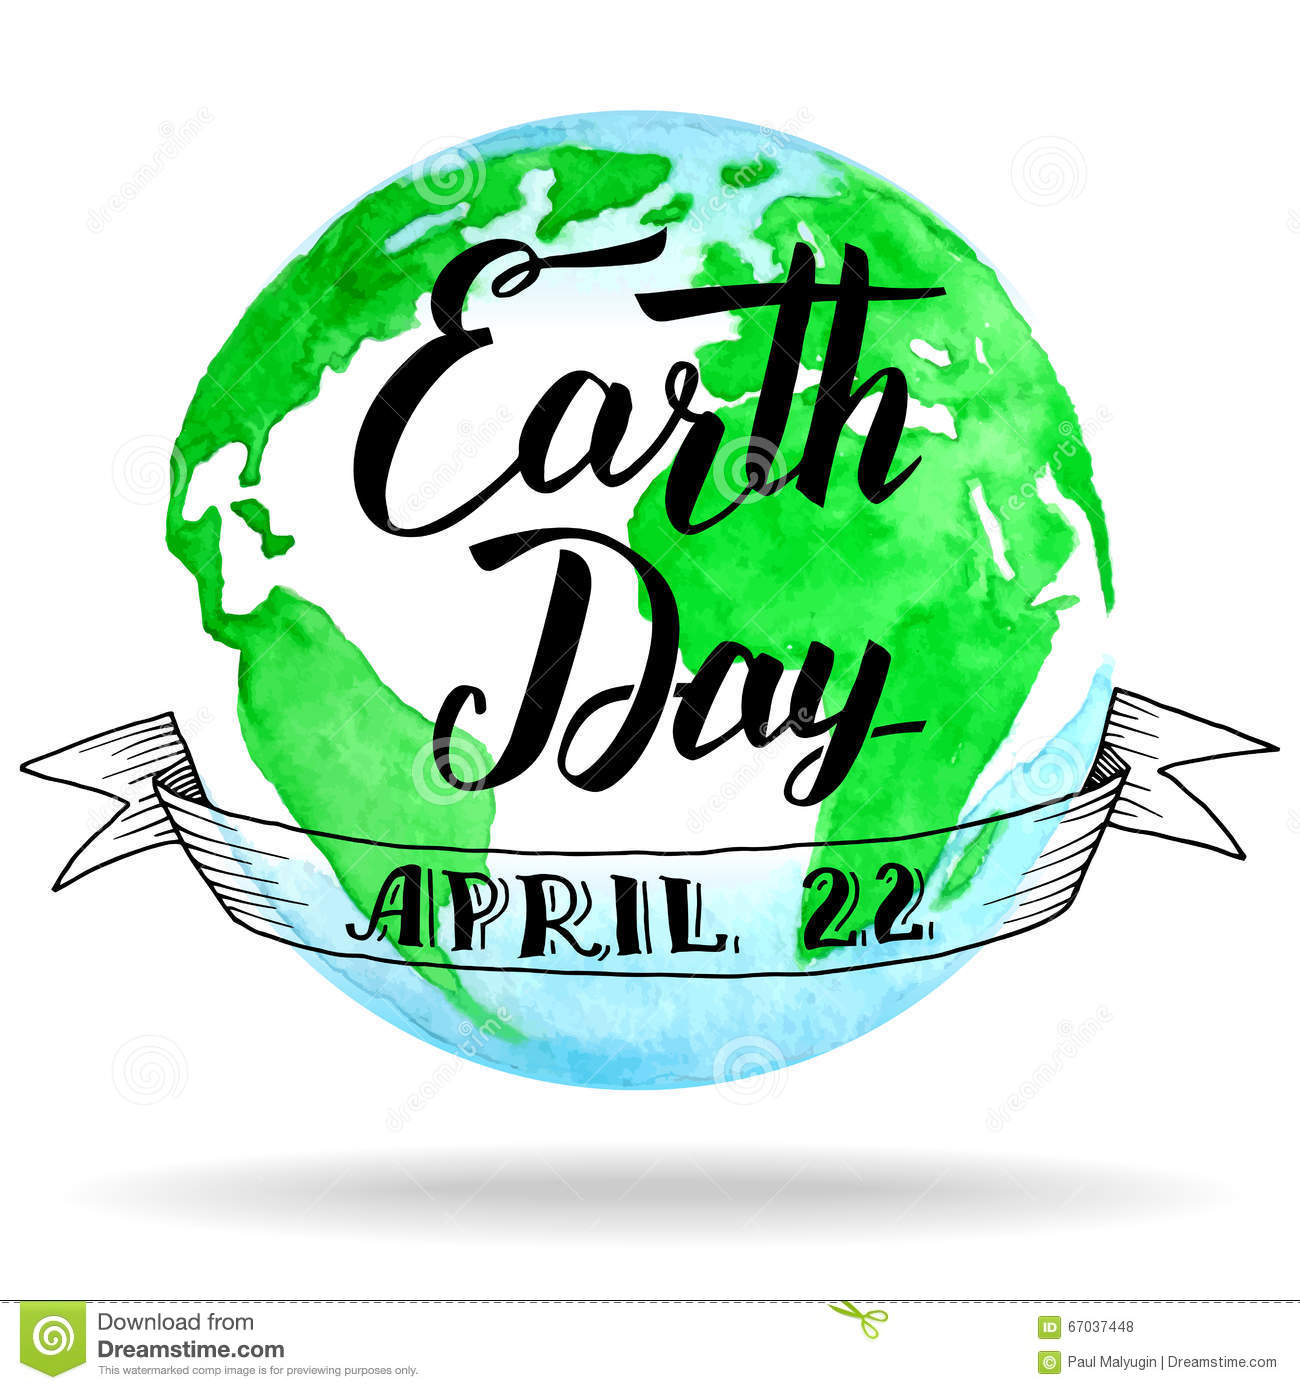 Earth day calligraphy on watercolor background stock